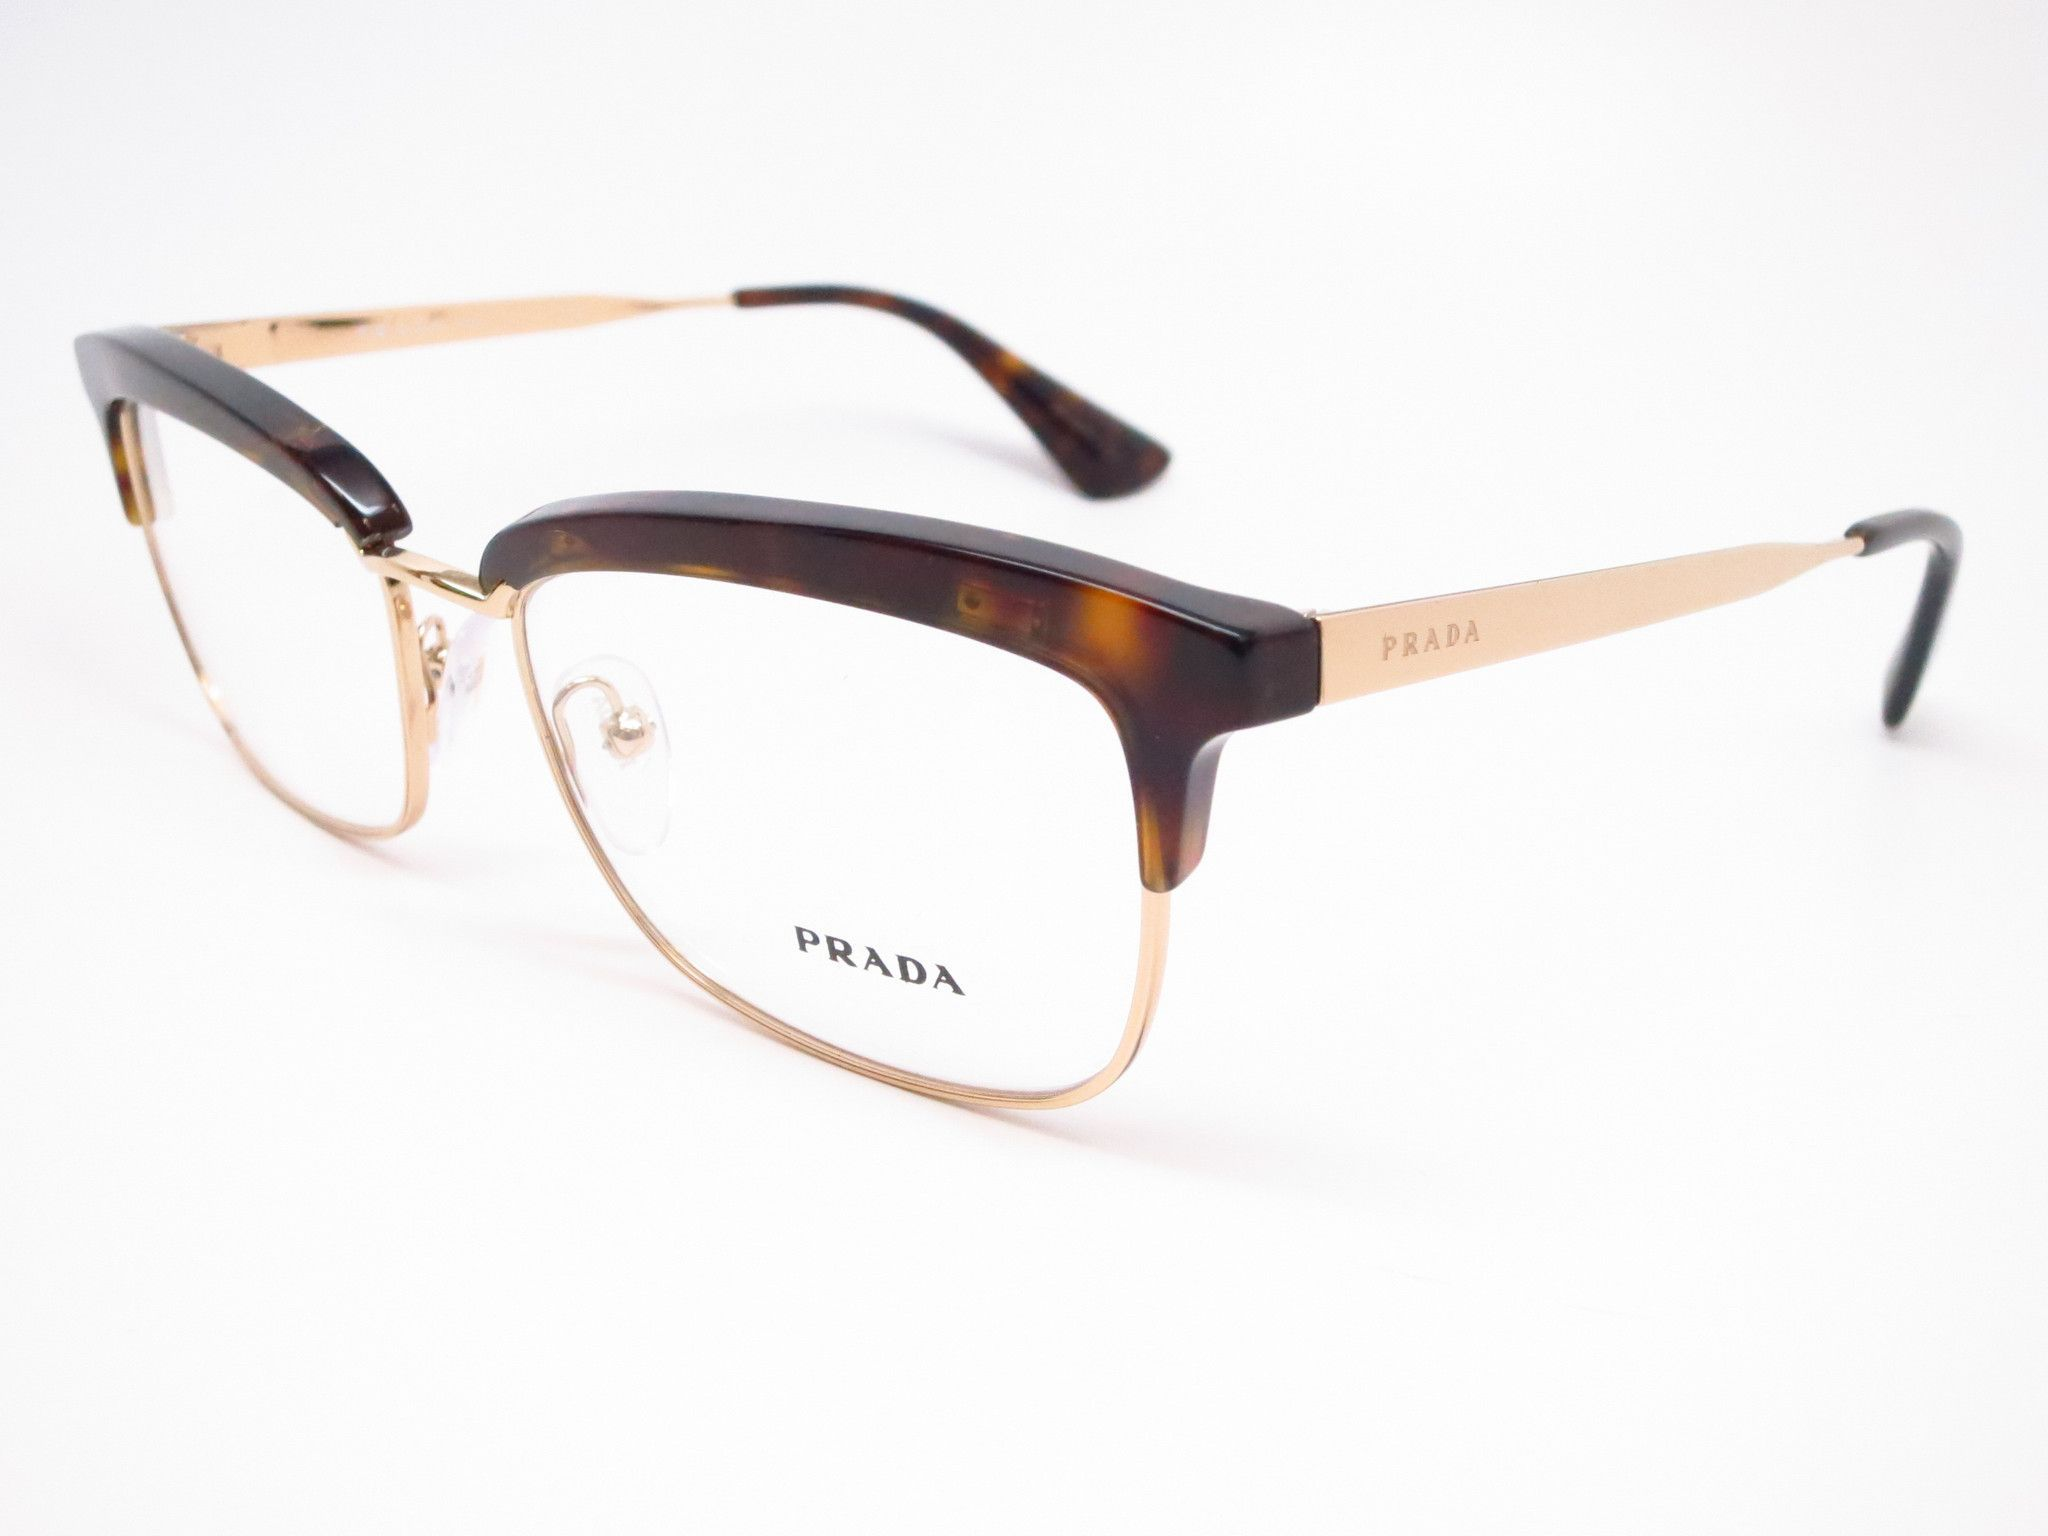 99d004bd6239 Features of the Prada VPR 08S - Elegant rectangle shape - Silicone  nose-pads for